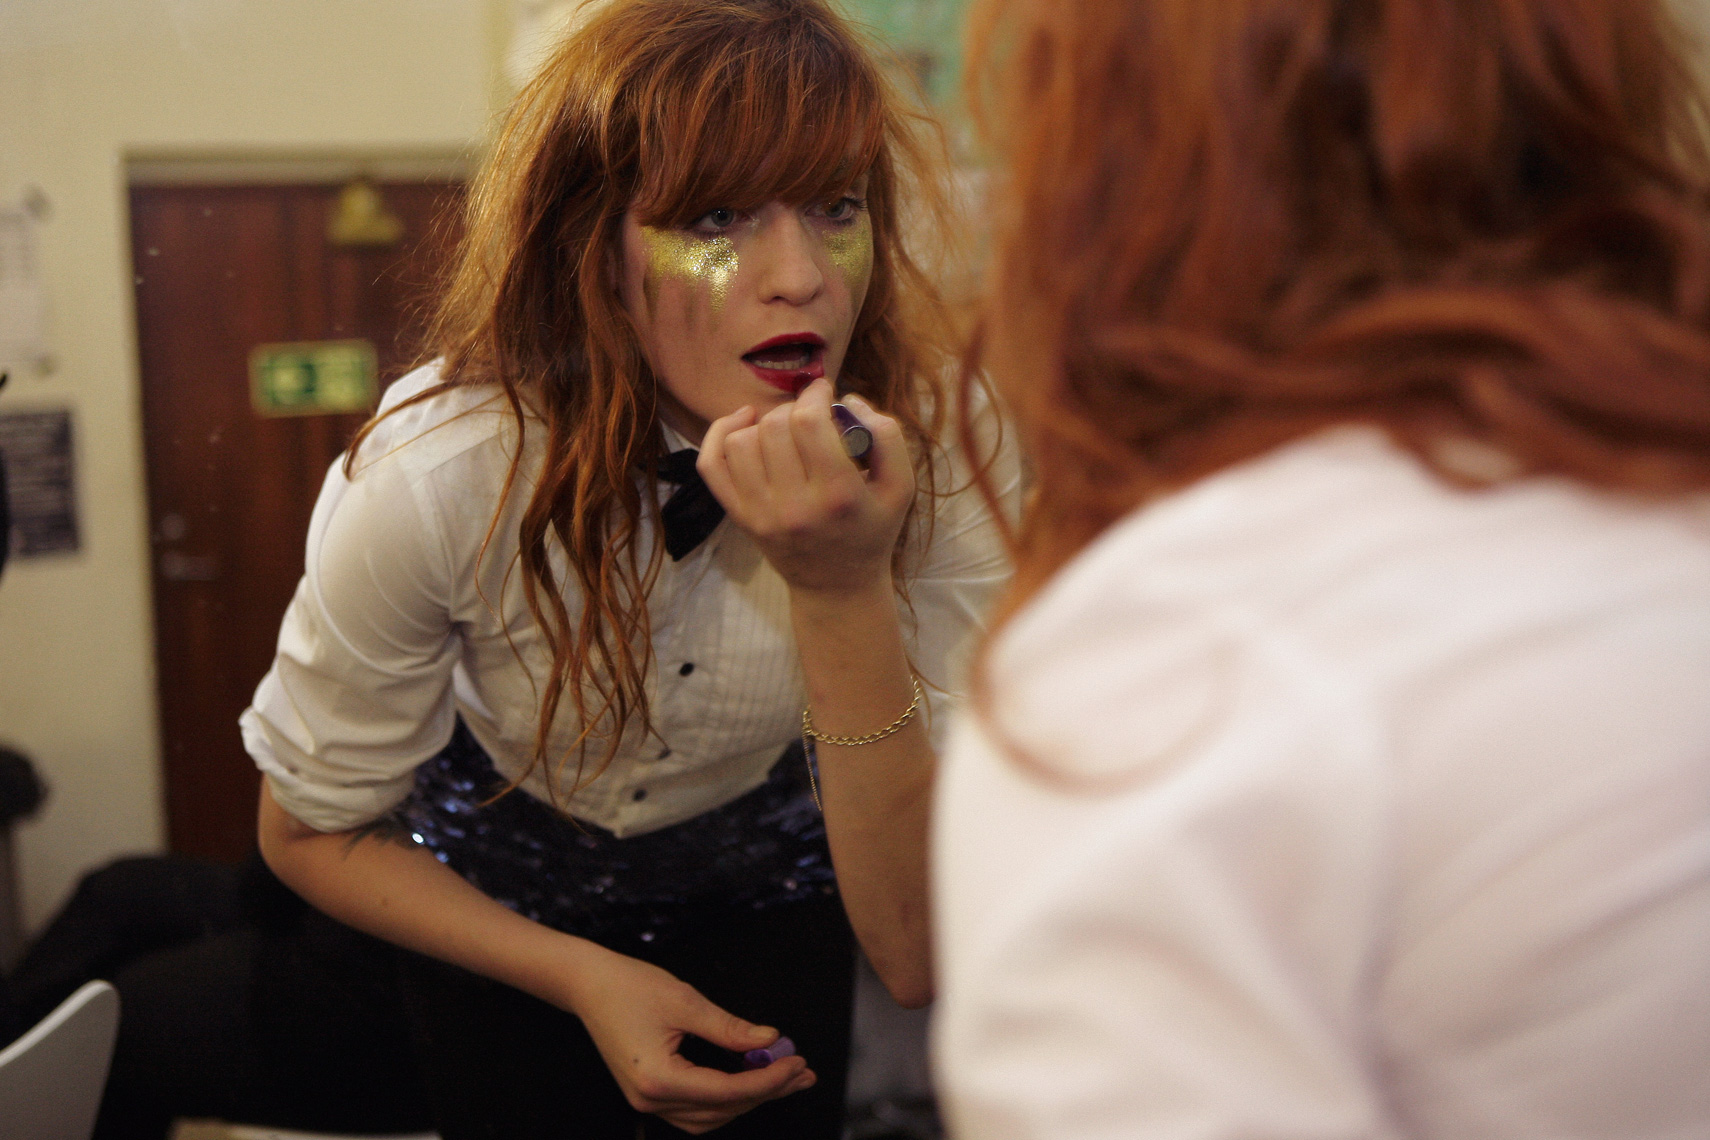 Florence Welch (Florence and The Machine) photographed by Tom Oxley